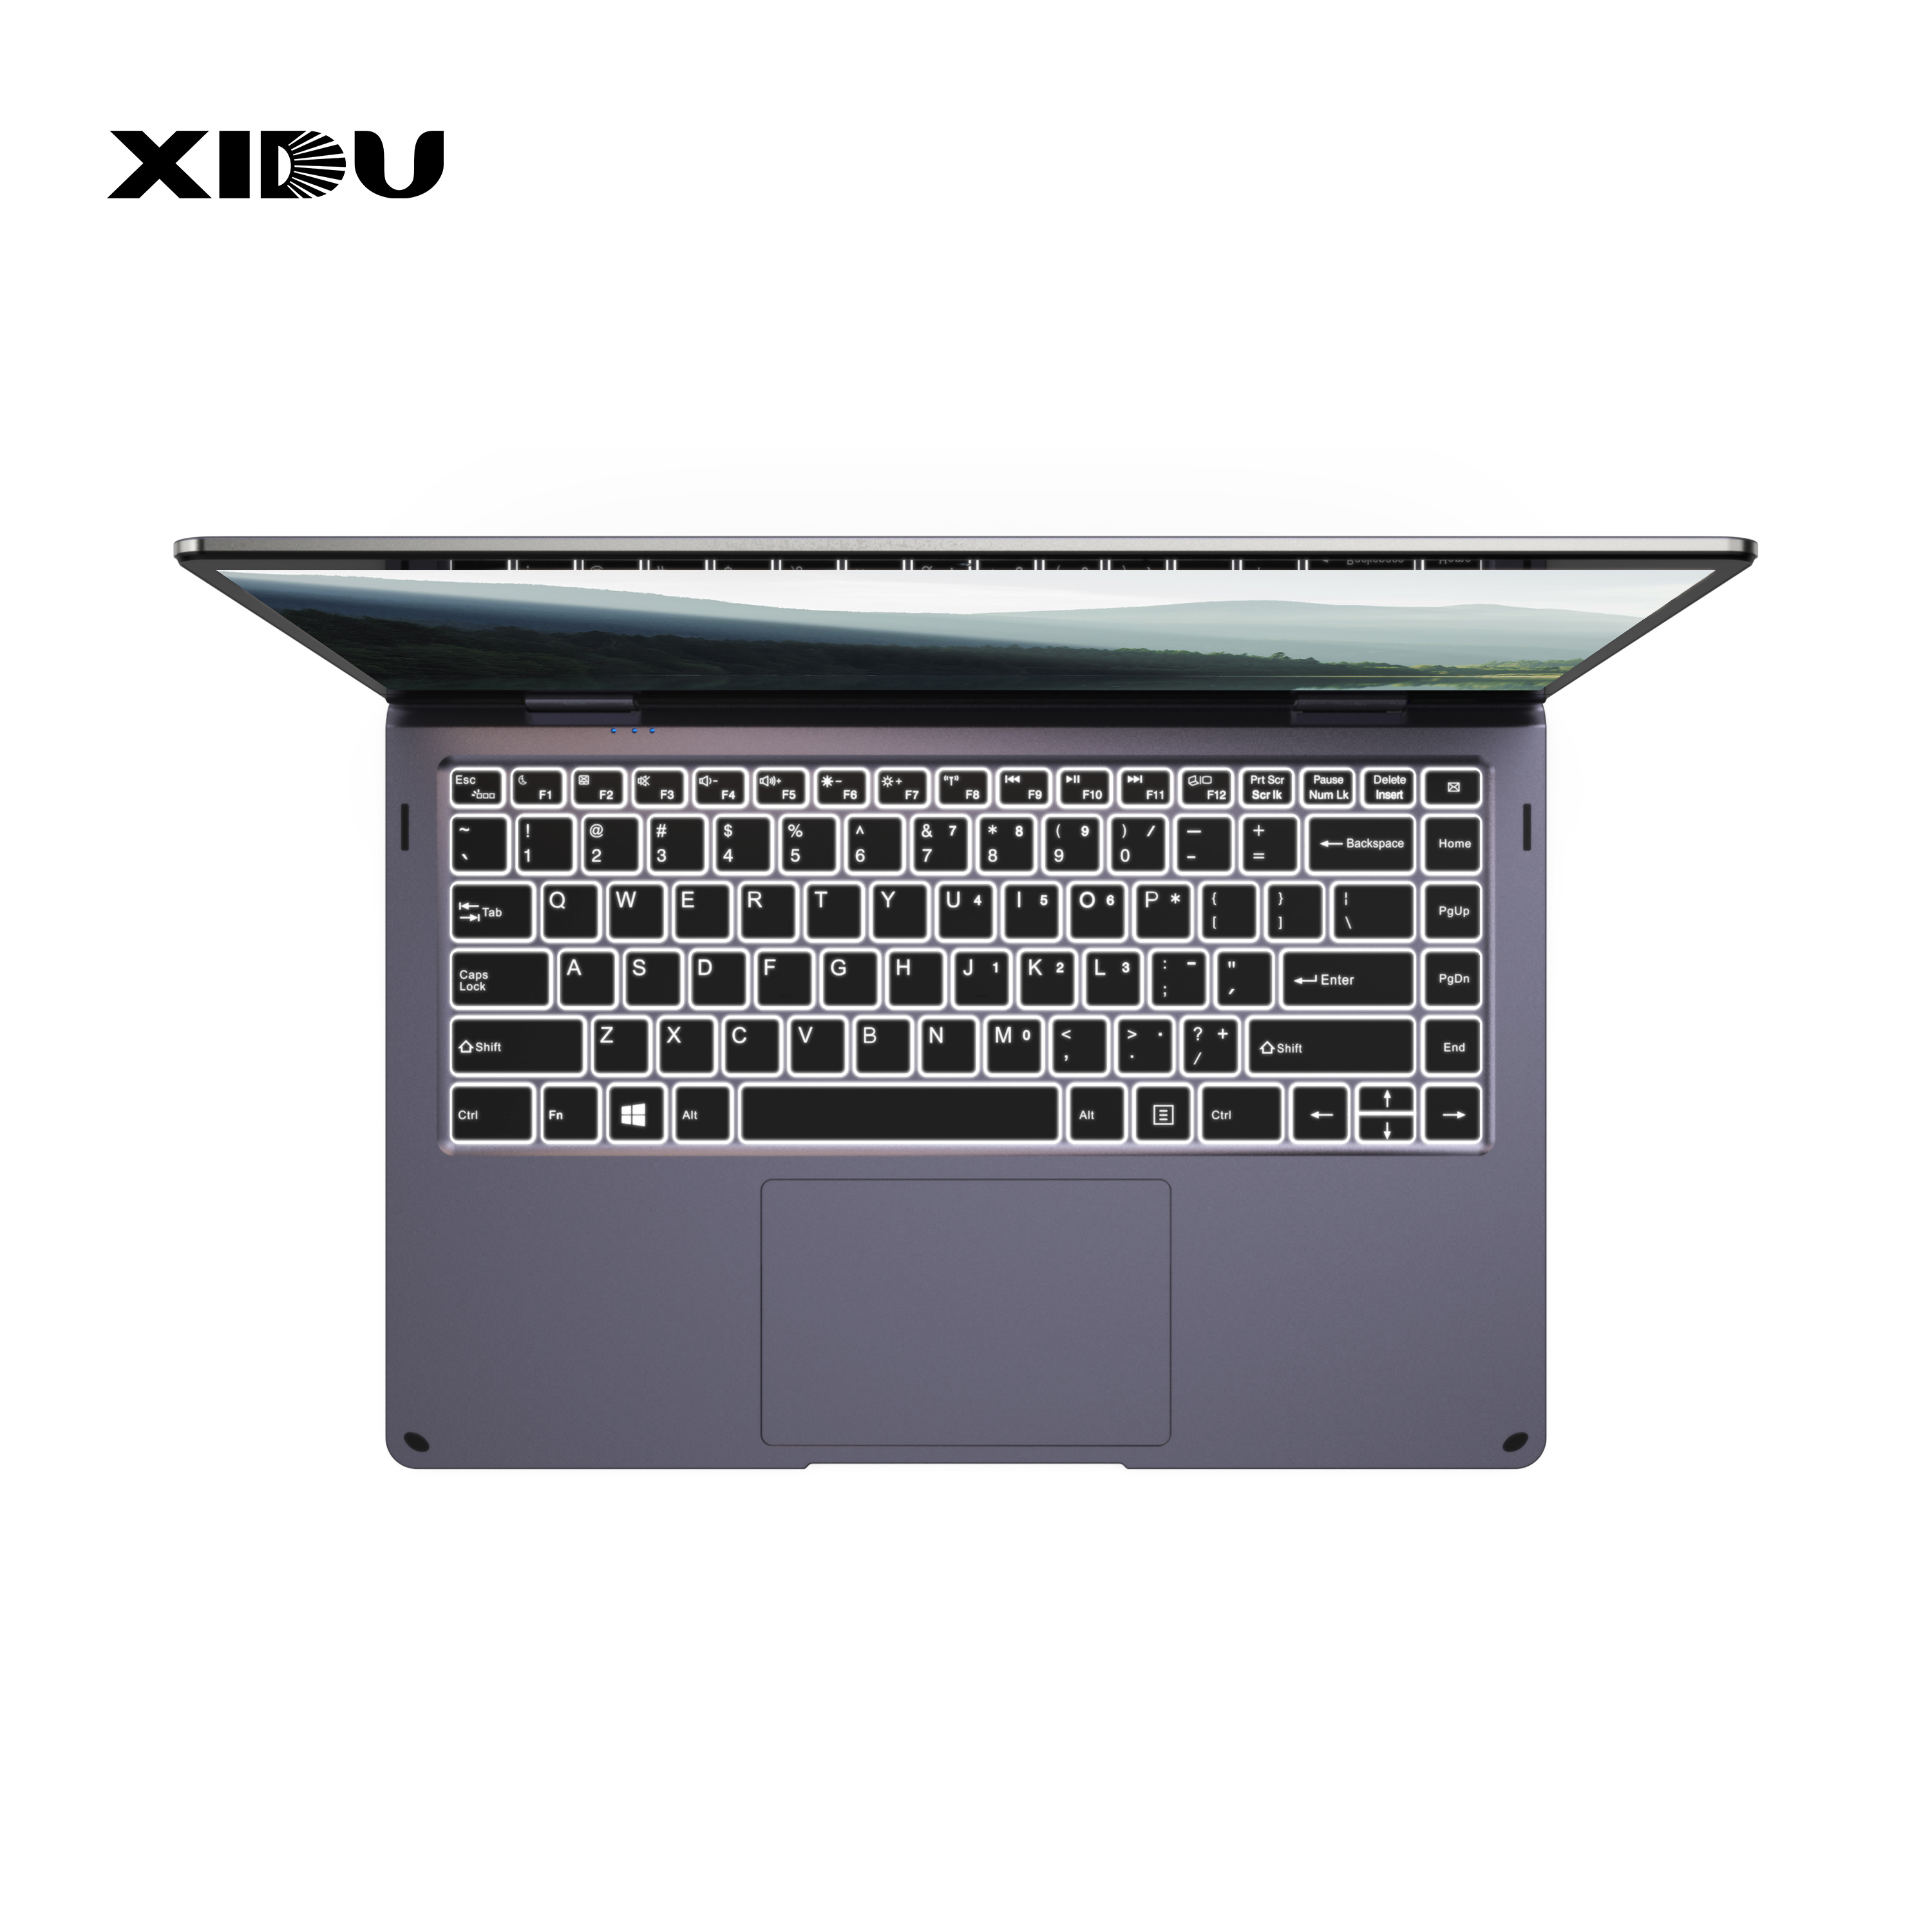 XIDU PhilBook Max Laptop 14.1'' Tablet 2 In 1 Notebook Window 10 Tablet Backlit Keyboard Computer 6GB Pc Laptop Notebook